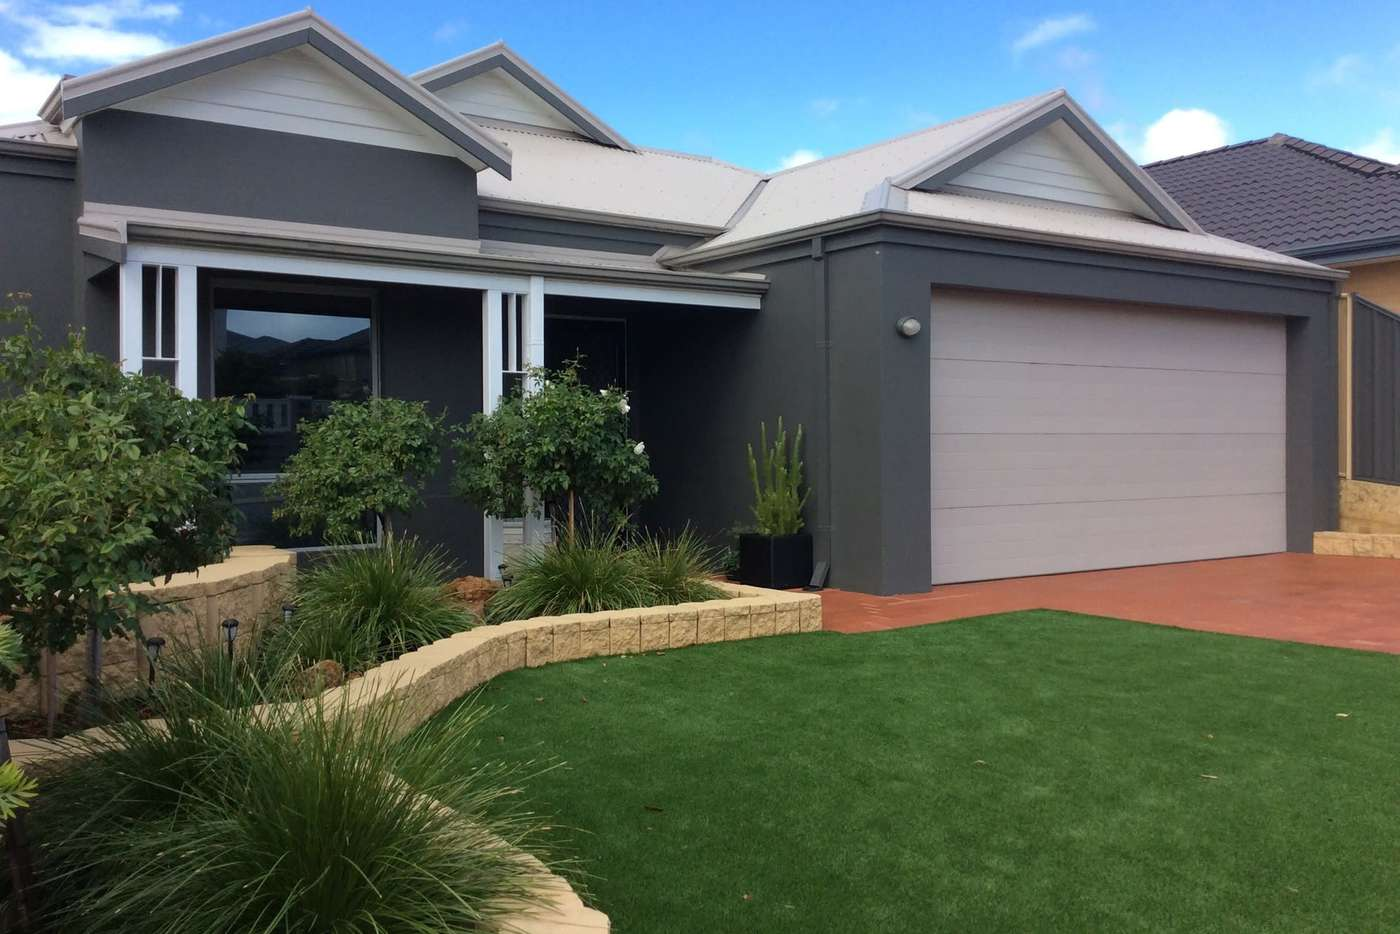 Main view of Homely house listing, 13 Bee Eater Link, Beeliar WA 6164